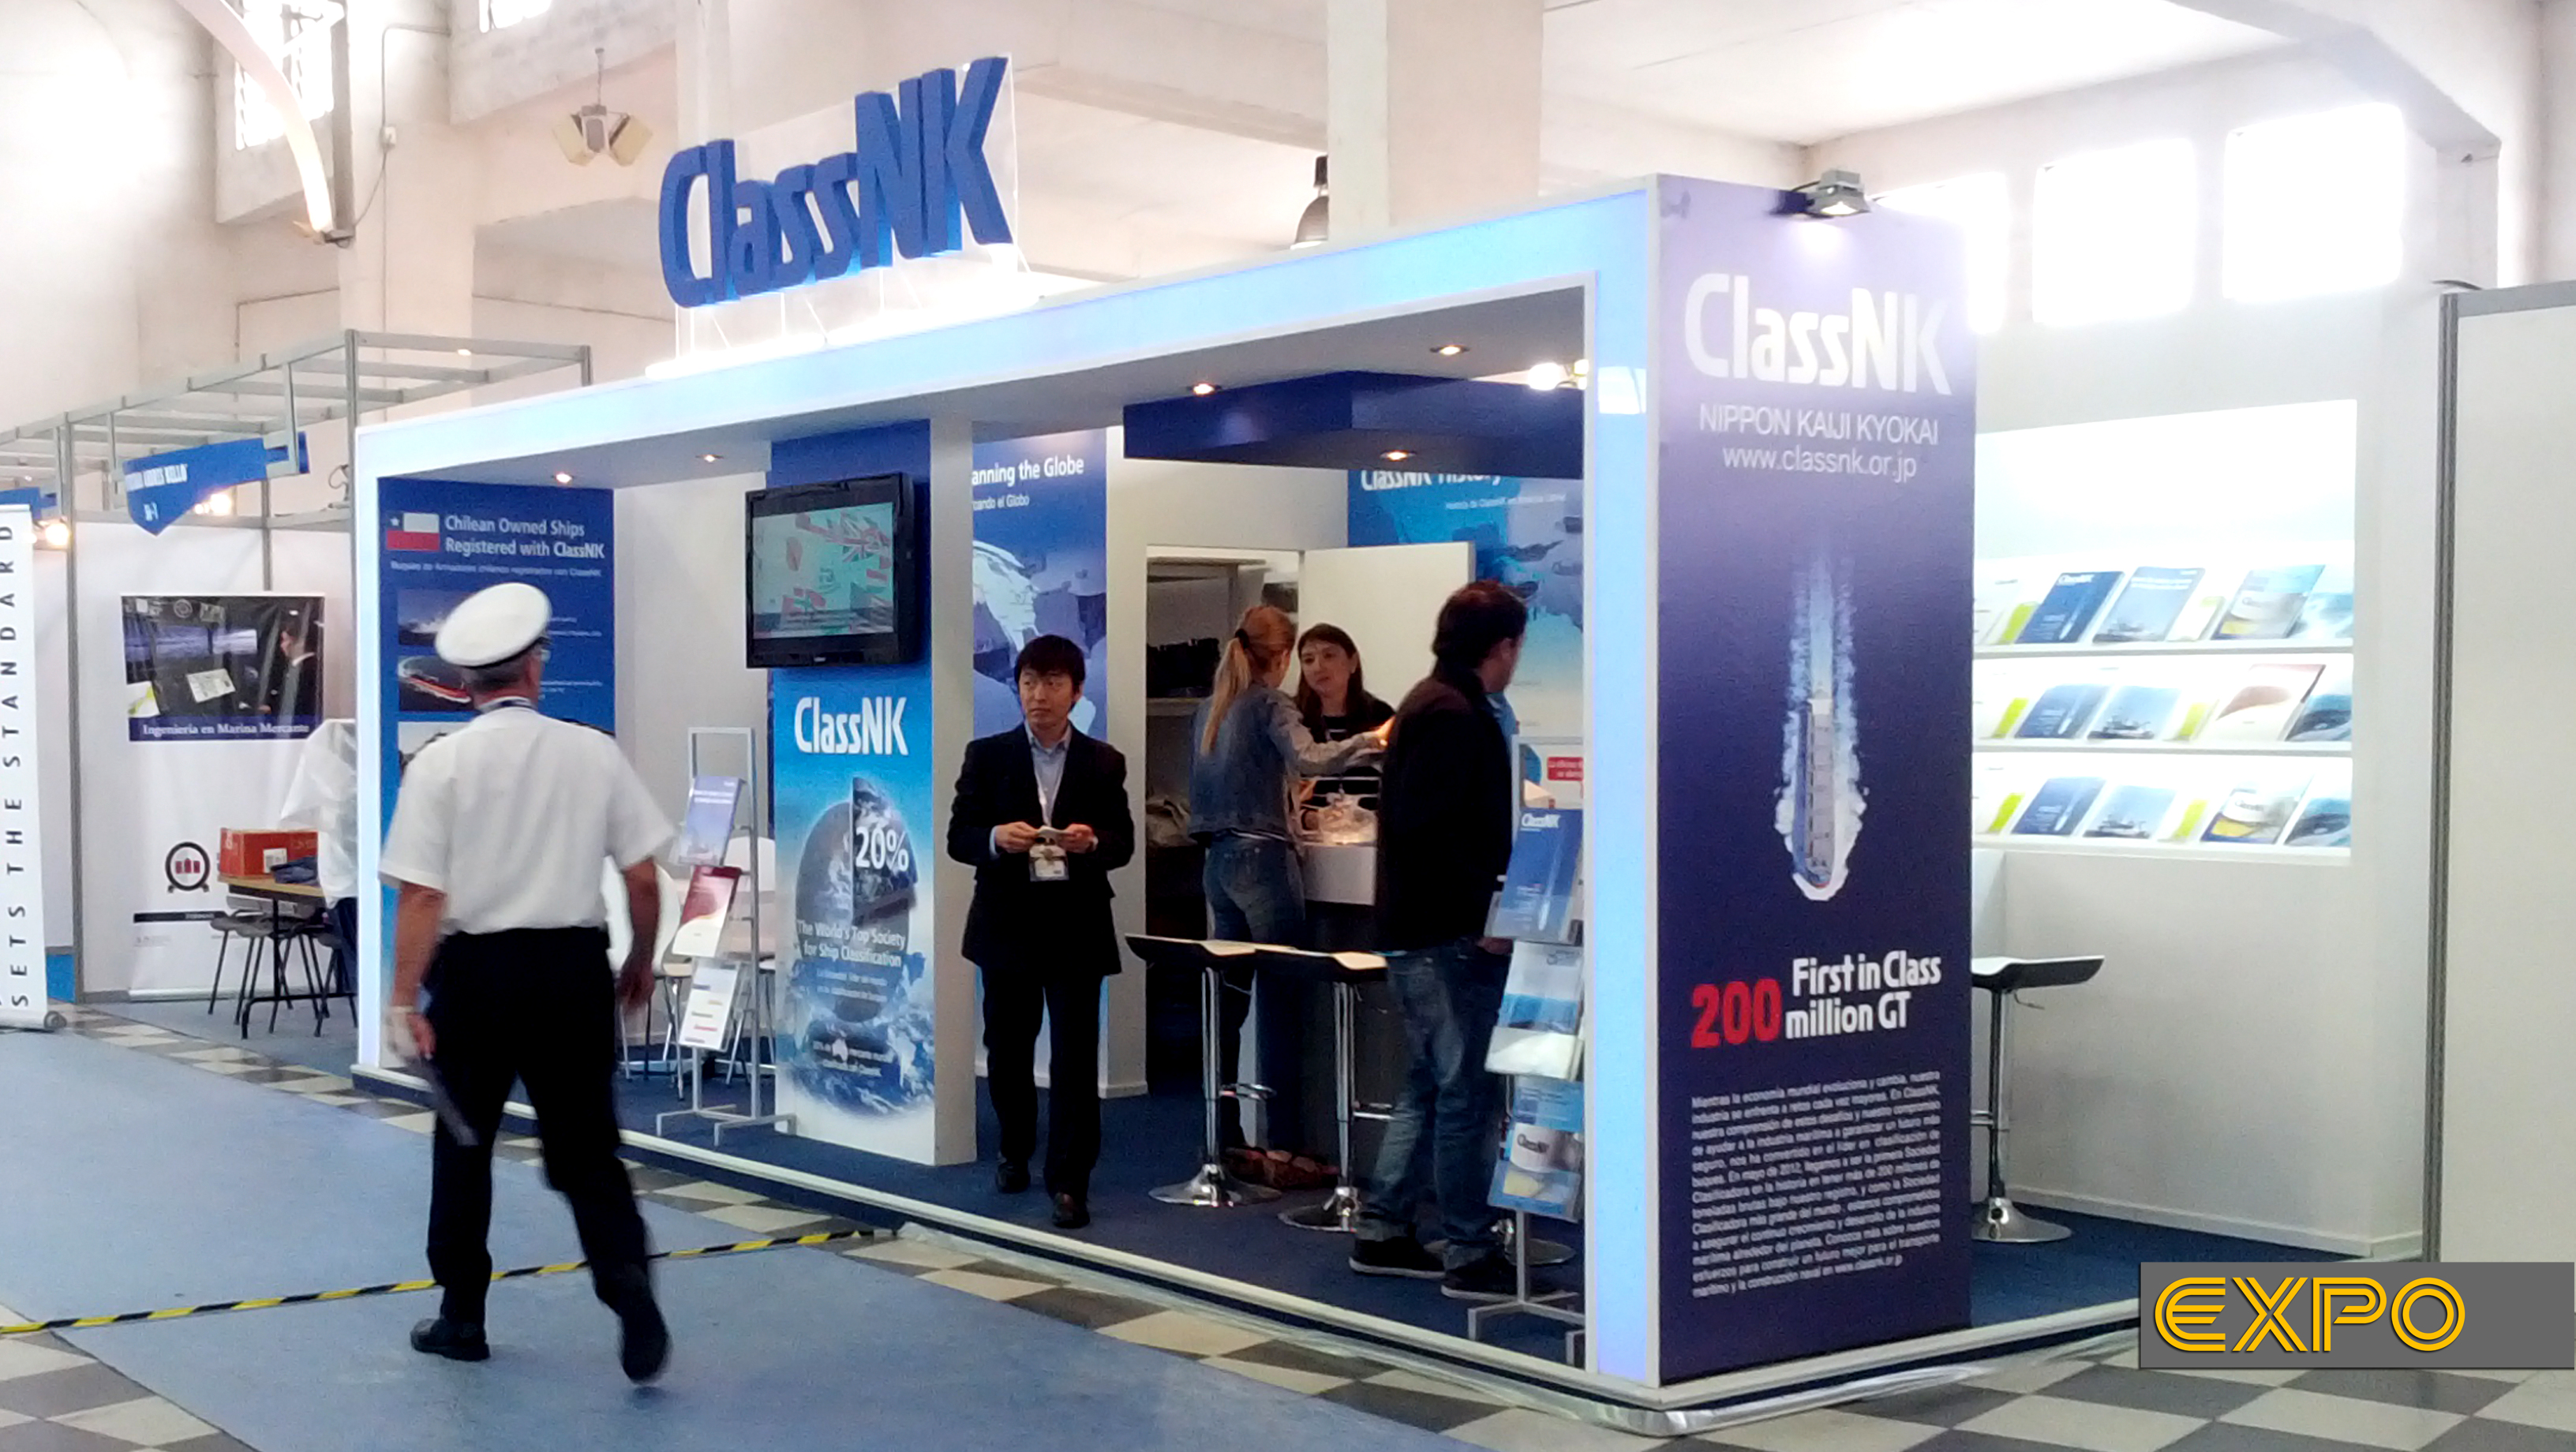 Stand Class NK - Exponaval 2012